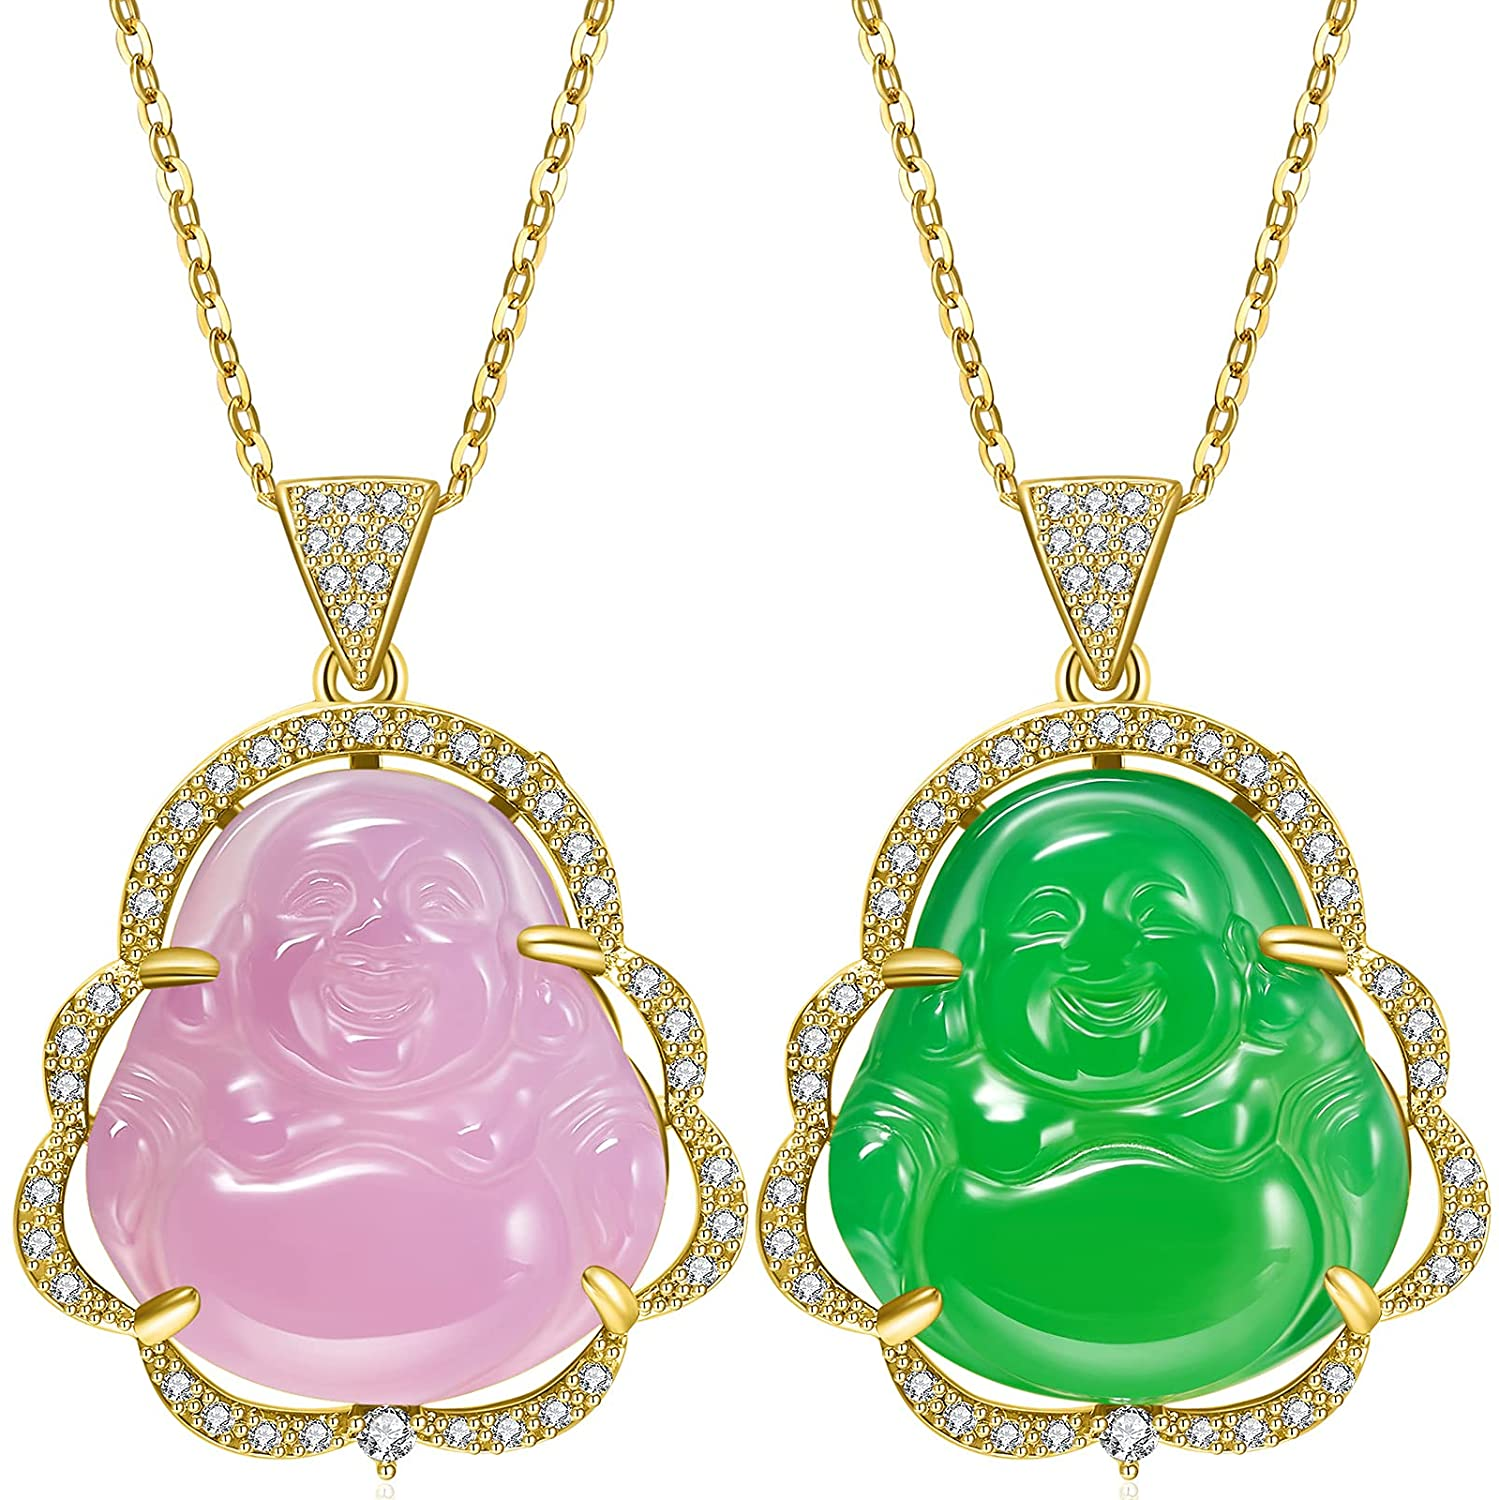 2 Pieces Buddha Pendant Necklace Green Pink Jade Smiling Buddha Chain Gold Bling Necklace Dainty Amulet Jewelry for Women Men